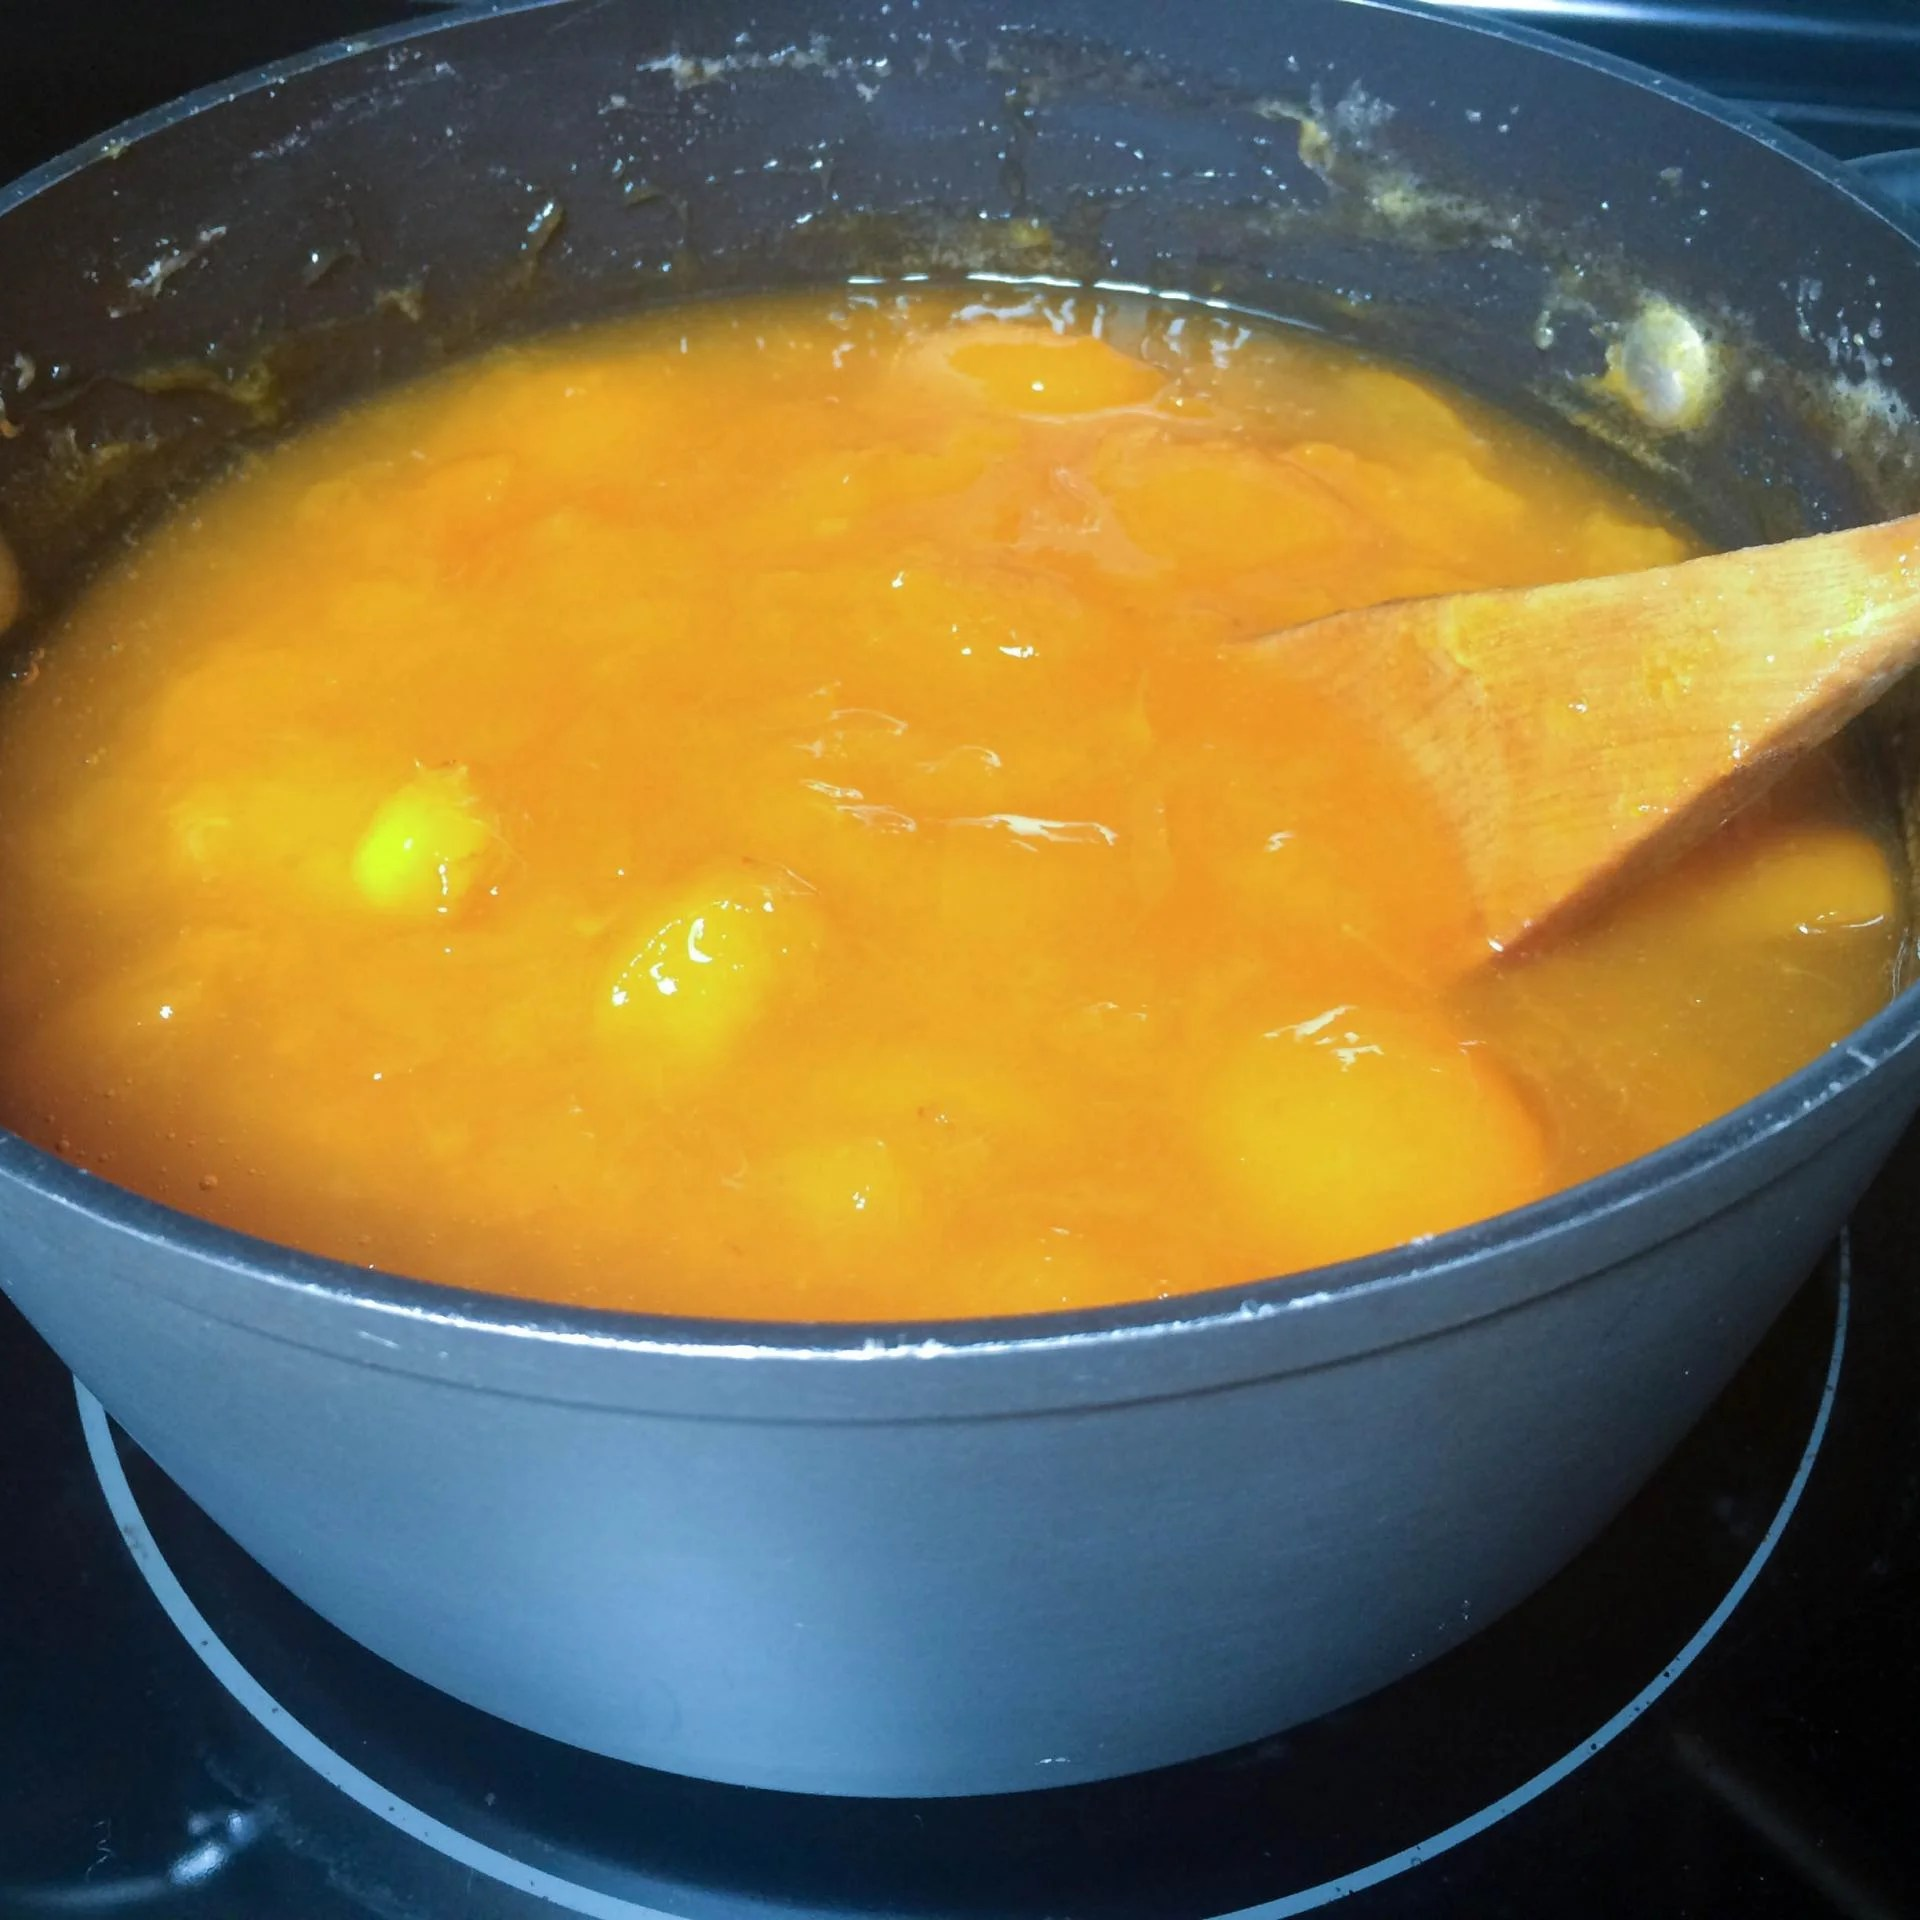 Apricot and sugar being boiled on a stove top